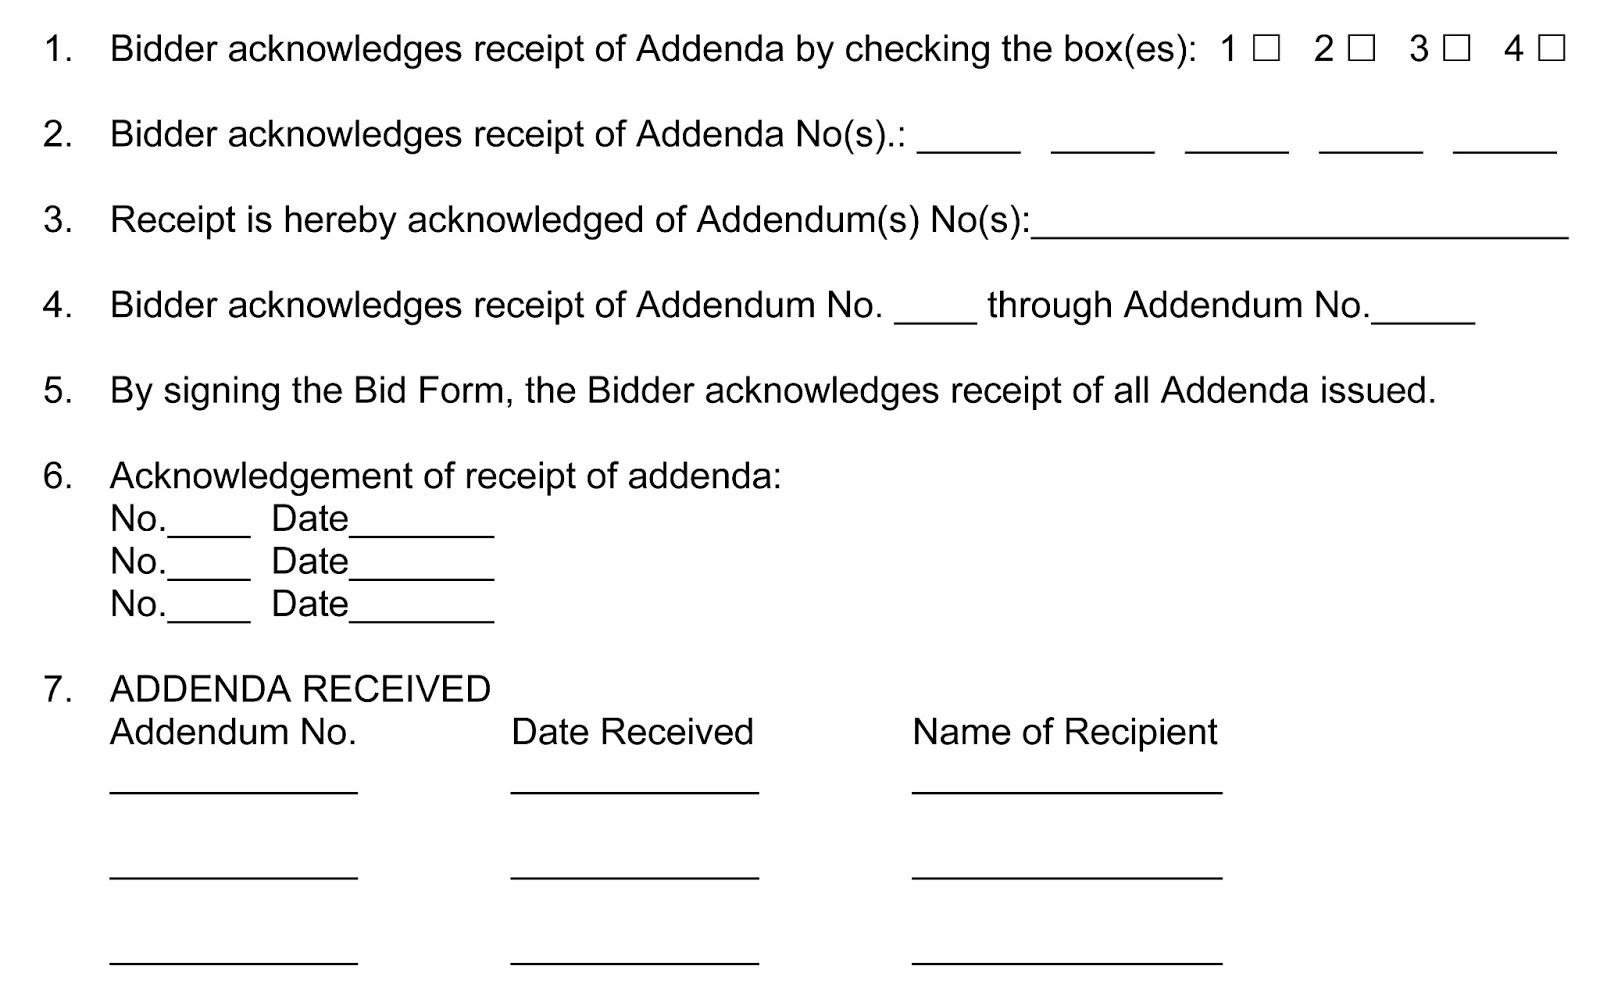 Mike purdys public contracting blog how should addenda be obtain the bidders acknowledgement of addenda receipt some of which are better than others the following represent seven basic models for how public altavistaventures Images